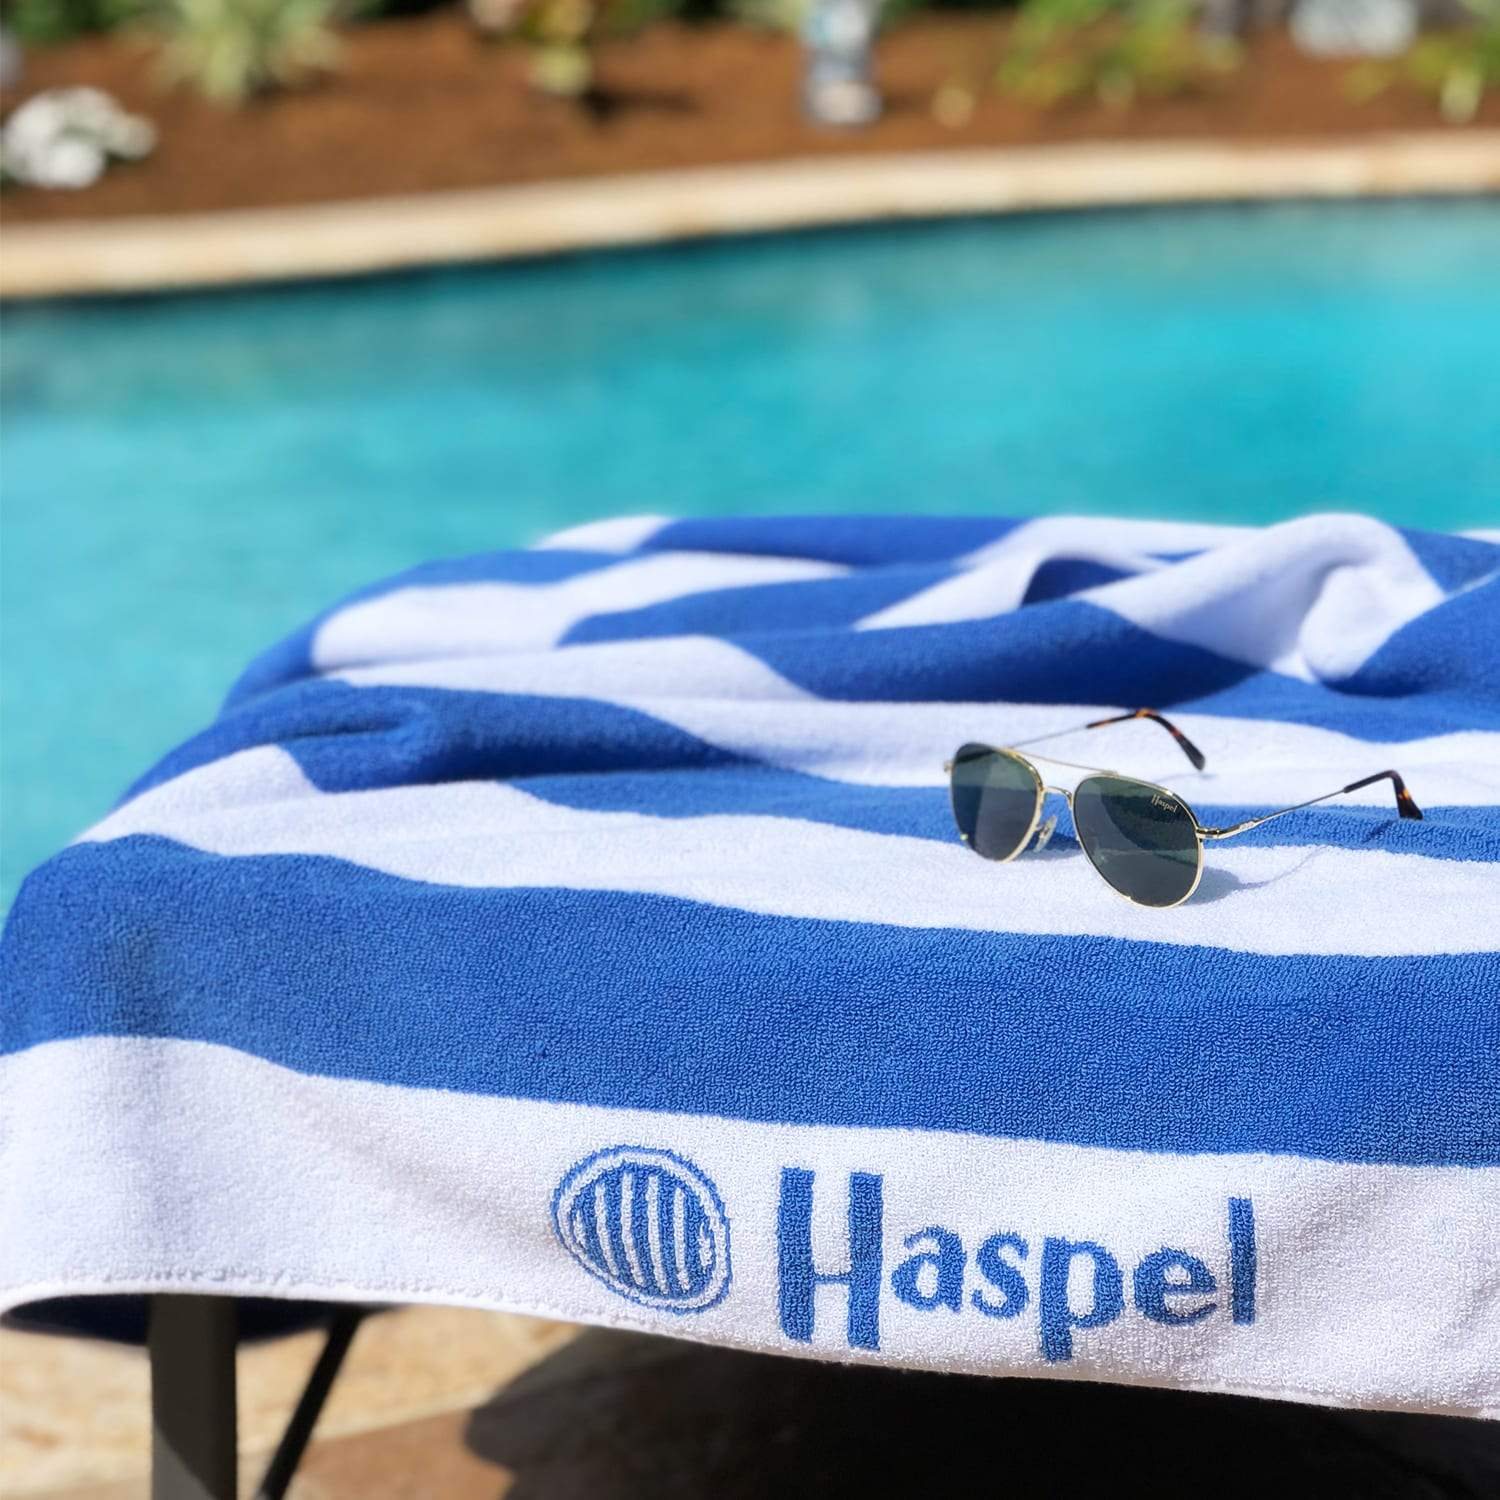 Haspel Seersucker Striped Beach Towel - Haspel Clothing